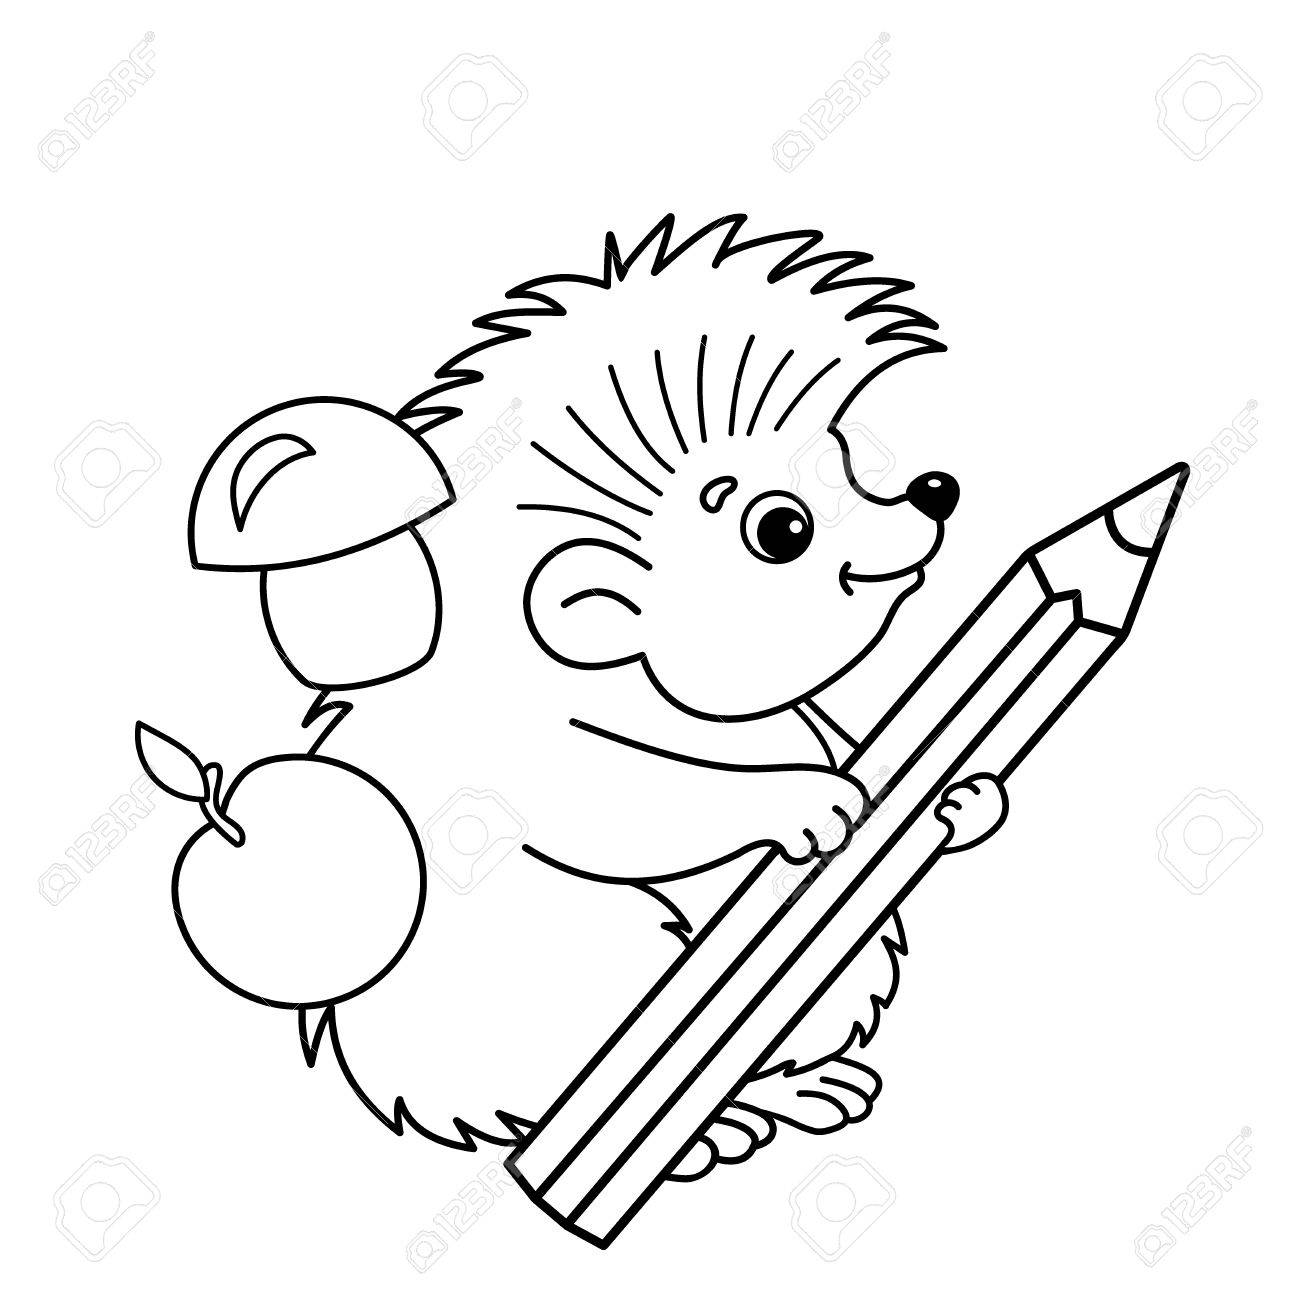 Coloring Page Outline Of Cartoon Hedgehog With Pencil Book For Kids Stock Vector